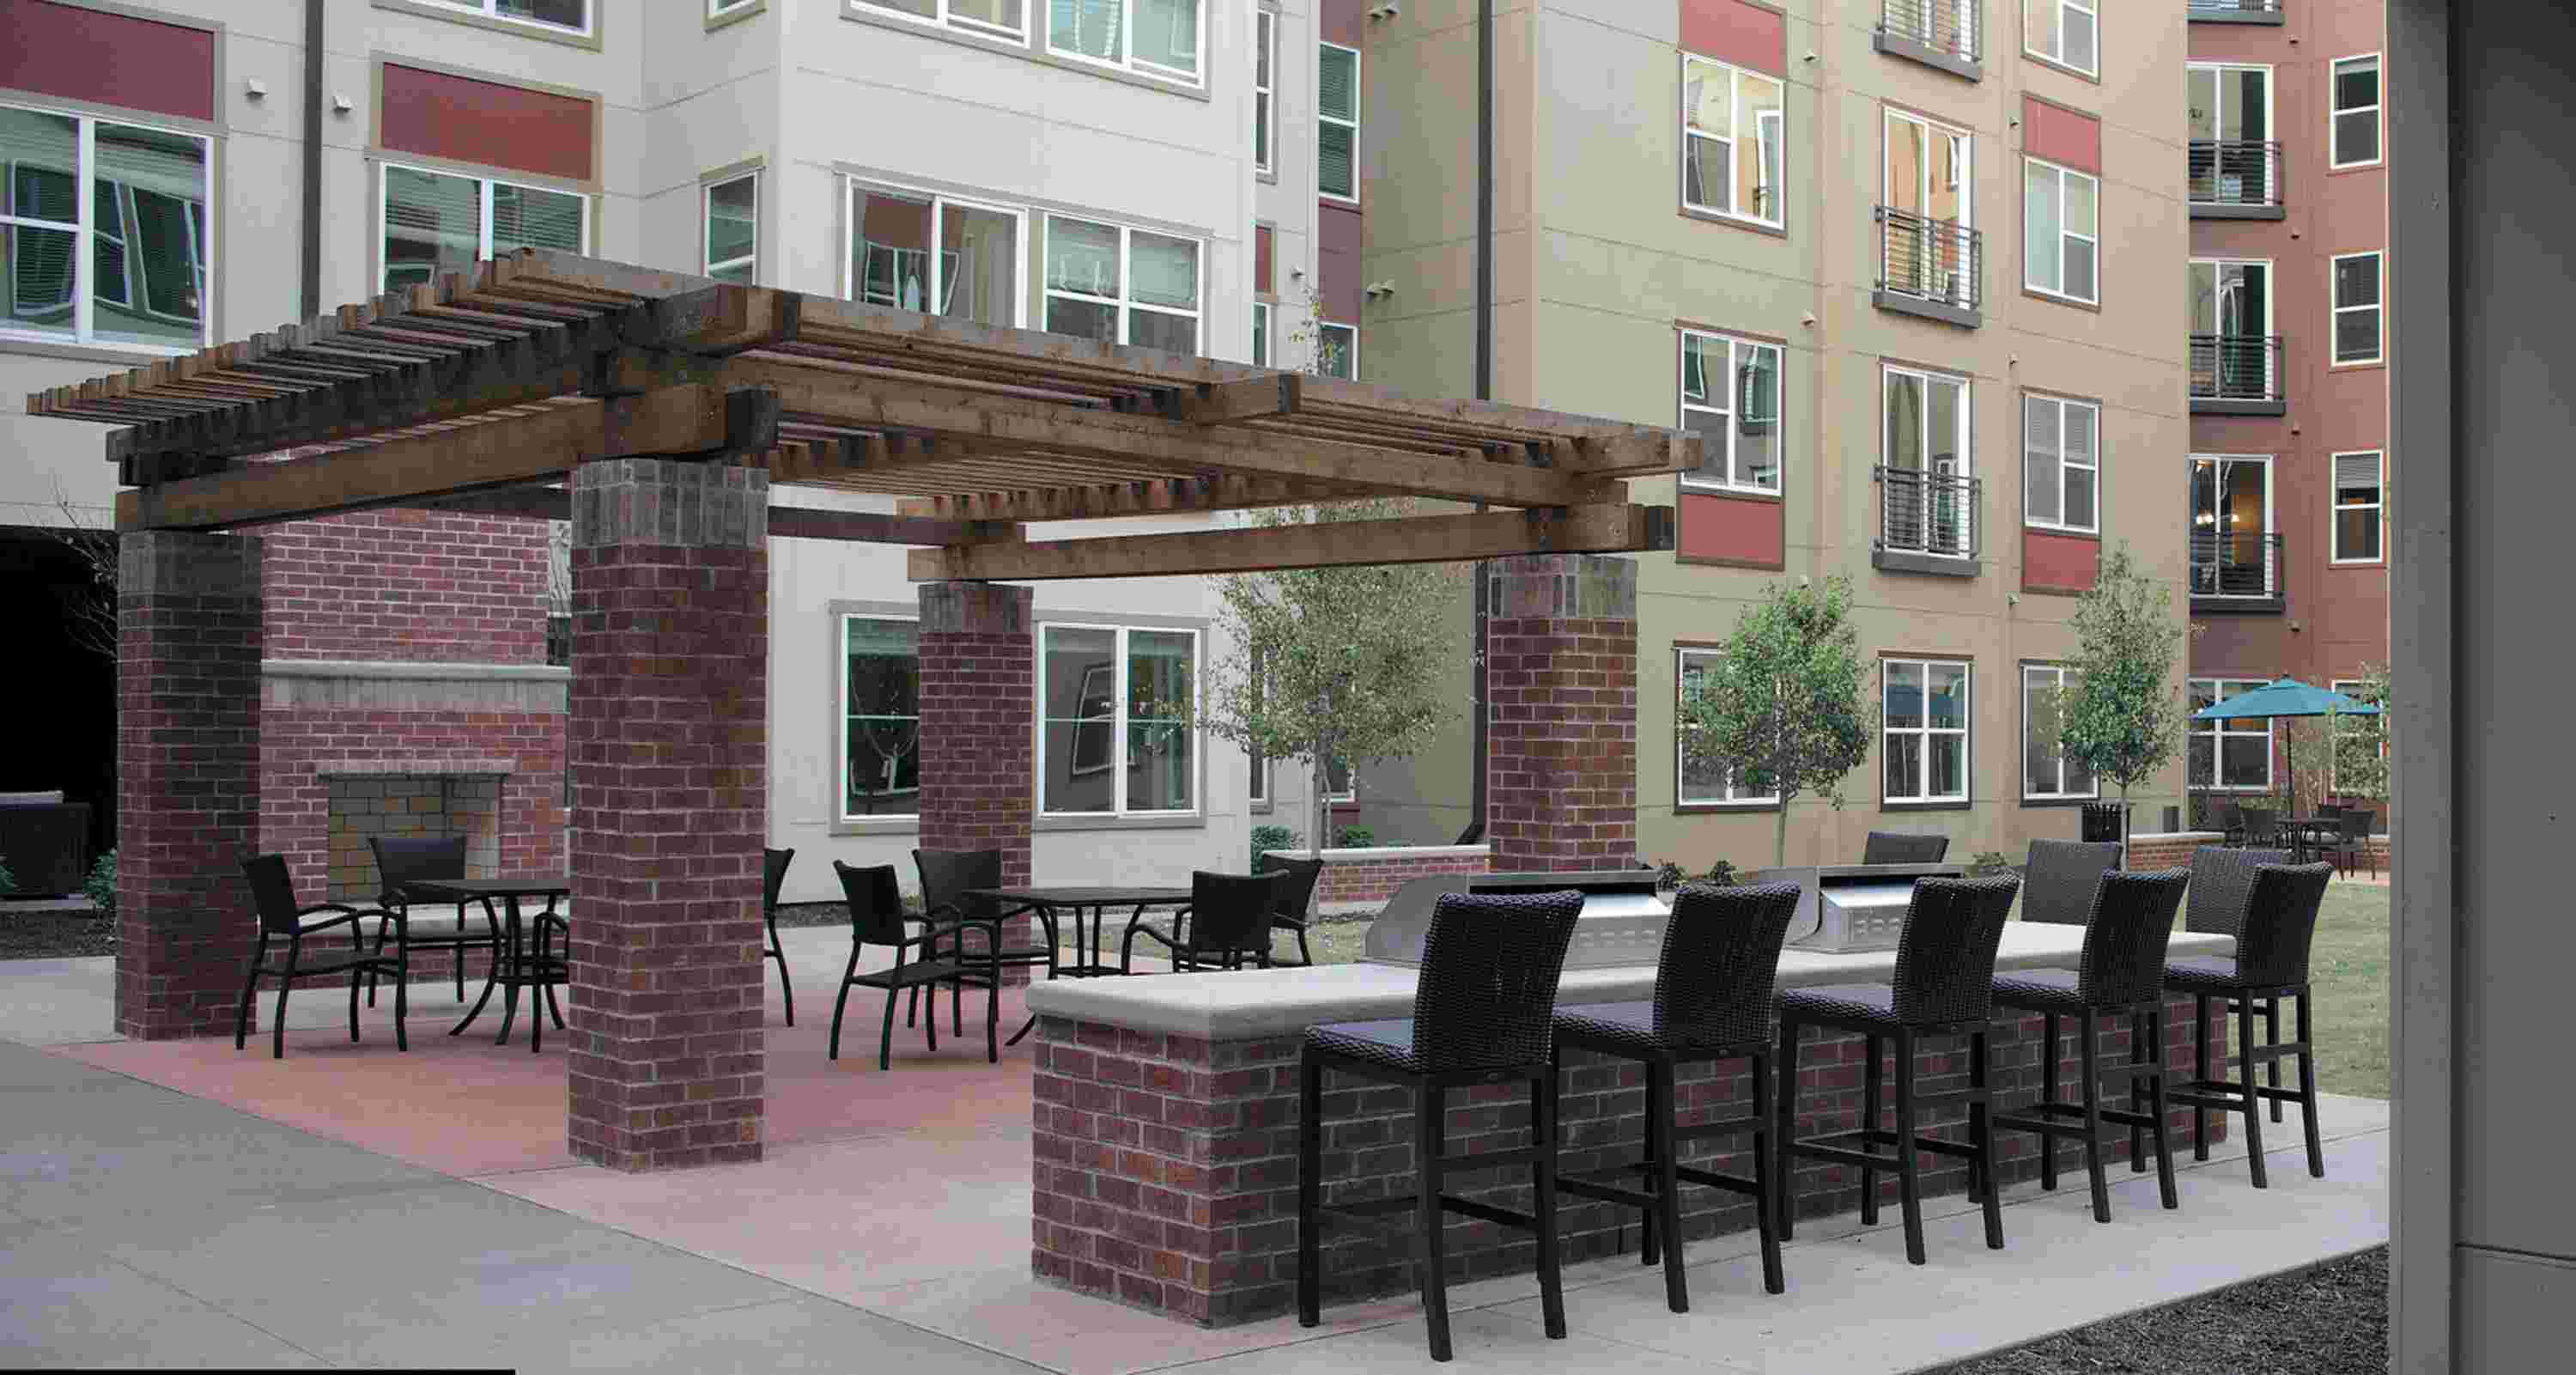 The-Lofts-At-City-Center-Tuscaloosa-AL-Outdoor-Courtyard-Unilodgers.